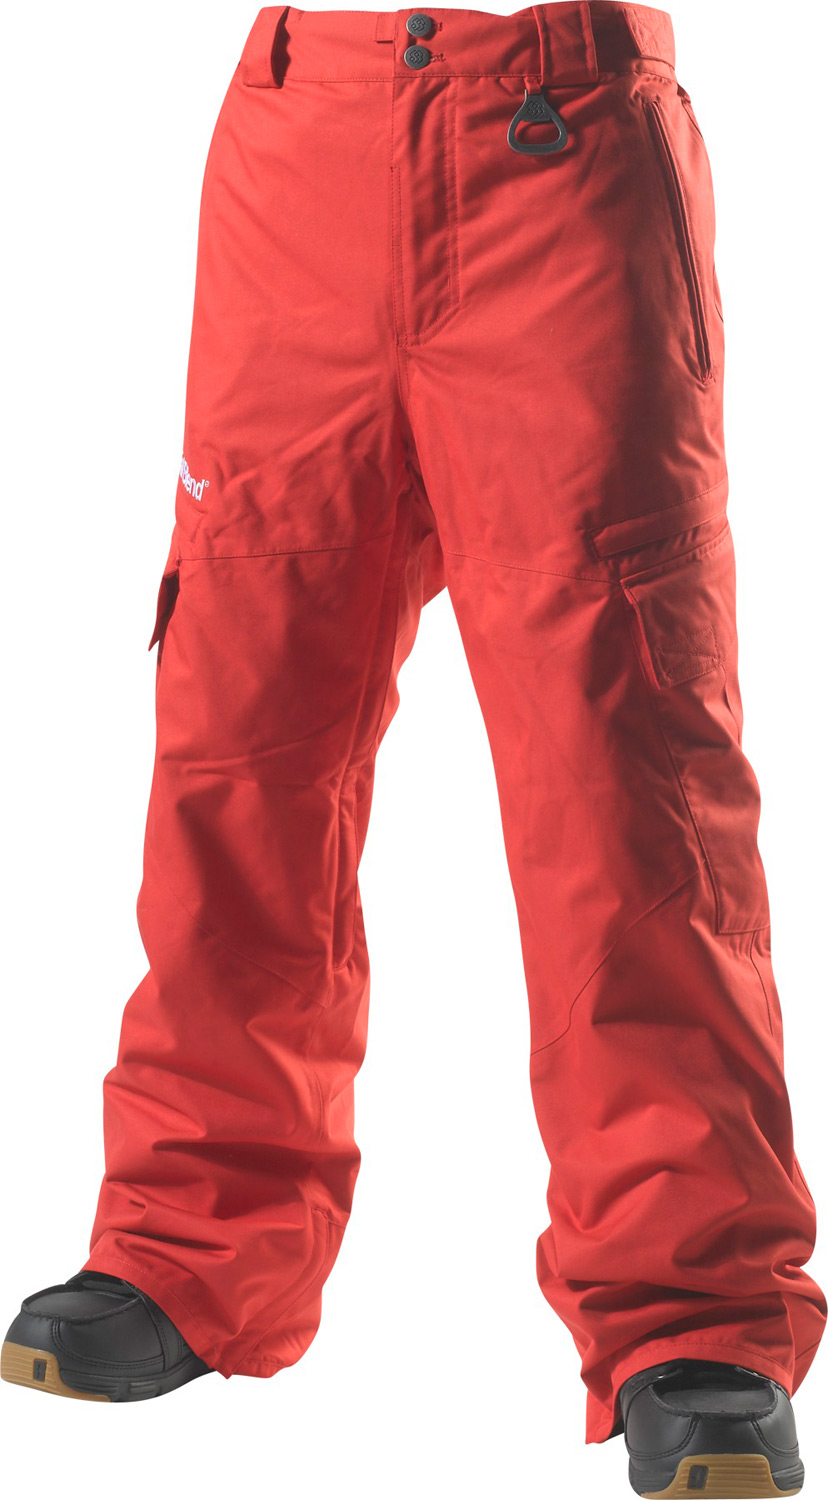 Snowboard Key Features of the Special Blend Annex Snowboard Pants: 15,000mm Waterproof 10,000g Breathability Freedom Fit Pant Shell Fabric Poly Oxford (Solid) / Poly Ripstop (Print) / Nylon Tactel (Colorblock) Lining Printed/Embossed Nylon Taffeta, Stretch Closed Cell Mesh, Brushed Tricot, Open Cell Mesh, Lycra Fully Taped Seams Removable Sag-Proof Gaiter Bottle Opener Ticket Ring Gusseted Multi Utility Pockets Inseam & Outseam Vents Pop And Lock Hem Adjuster - $93.56